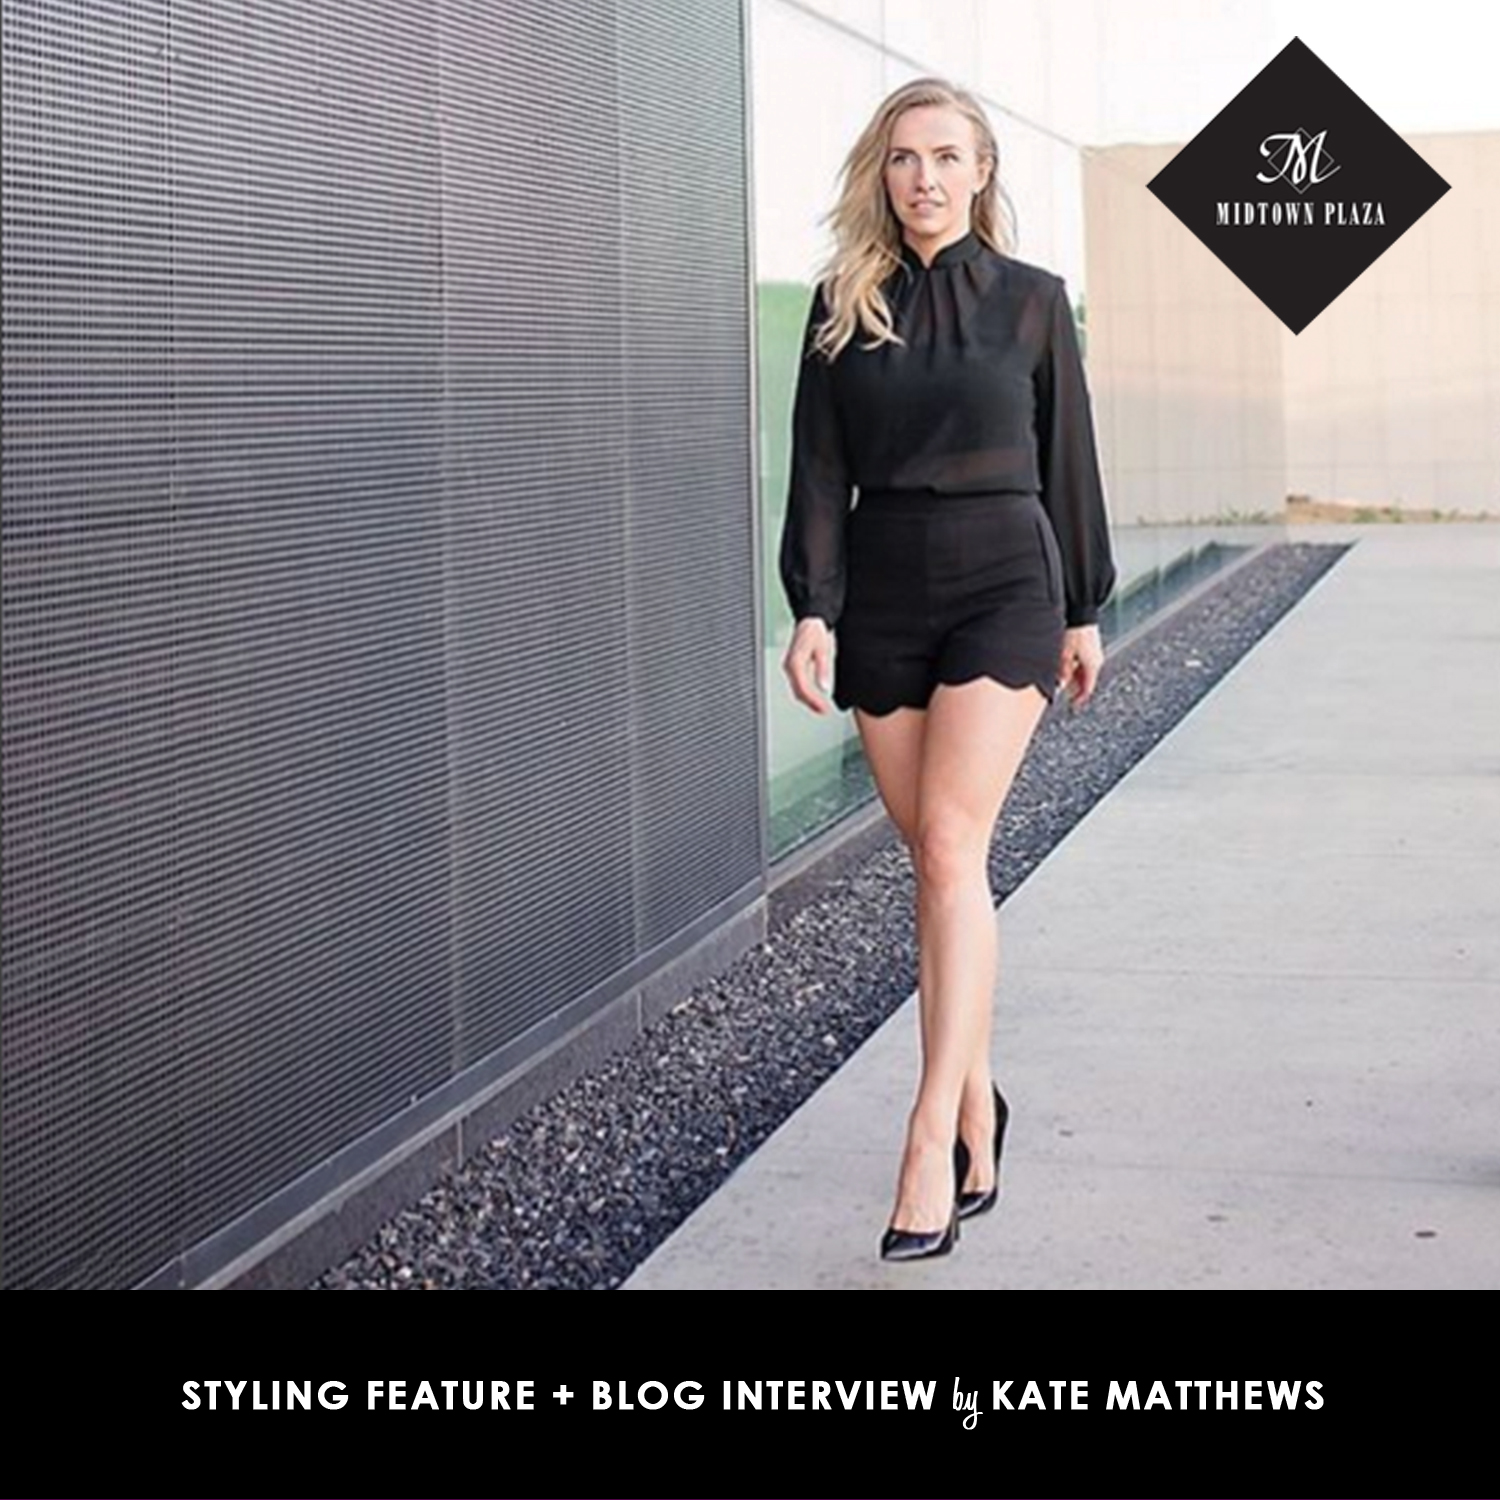 WARDROBE-STYLIST-KATE-MATTHEWS-INTERVIEW-MIDTOWN-PLAZA-BLOG